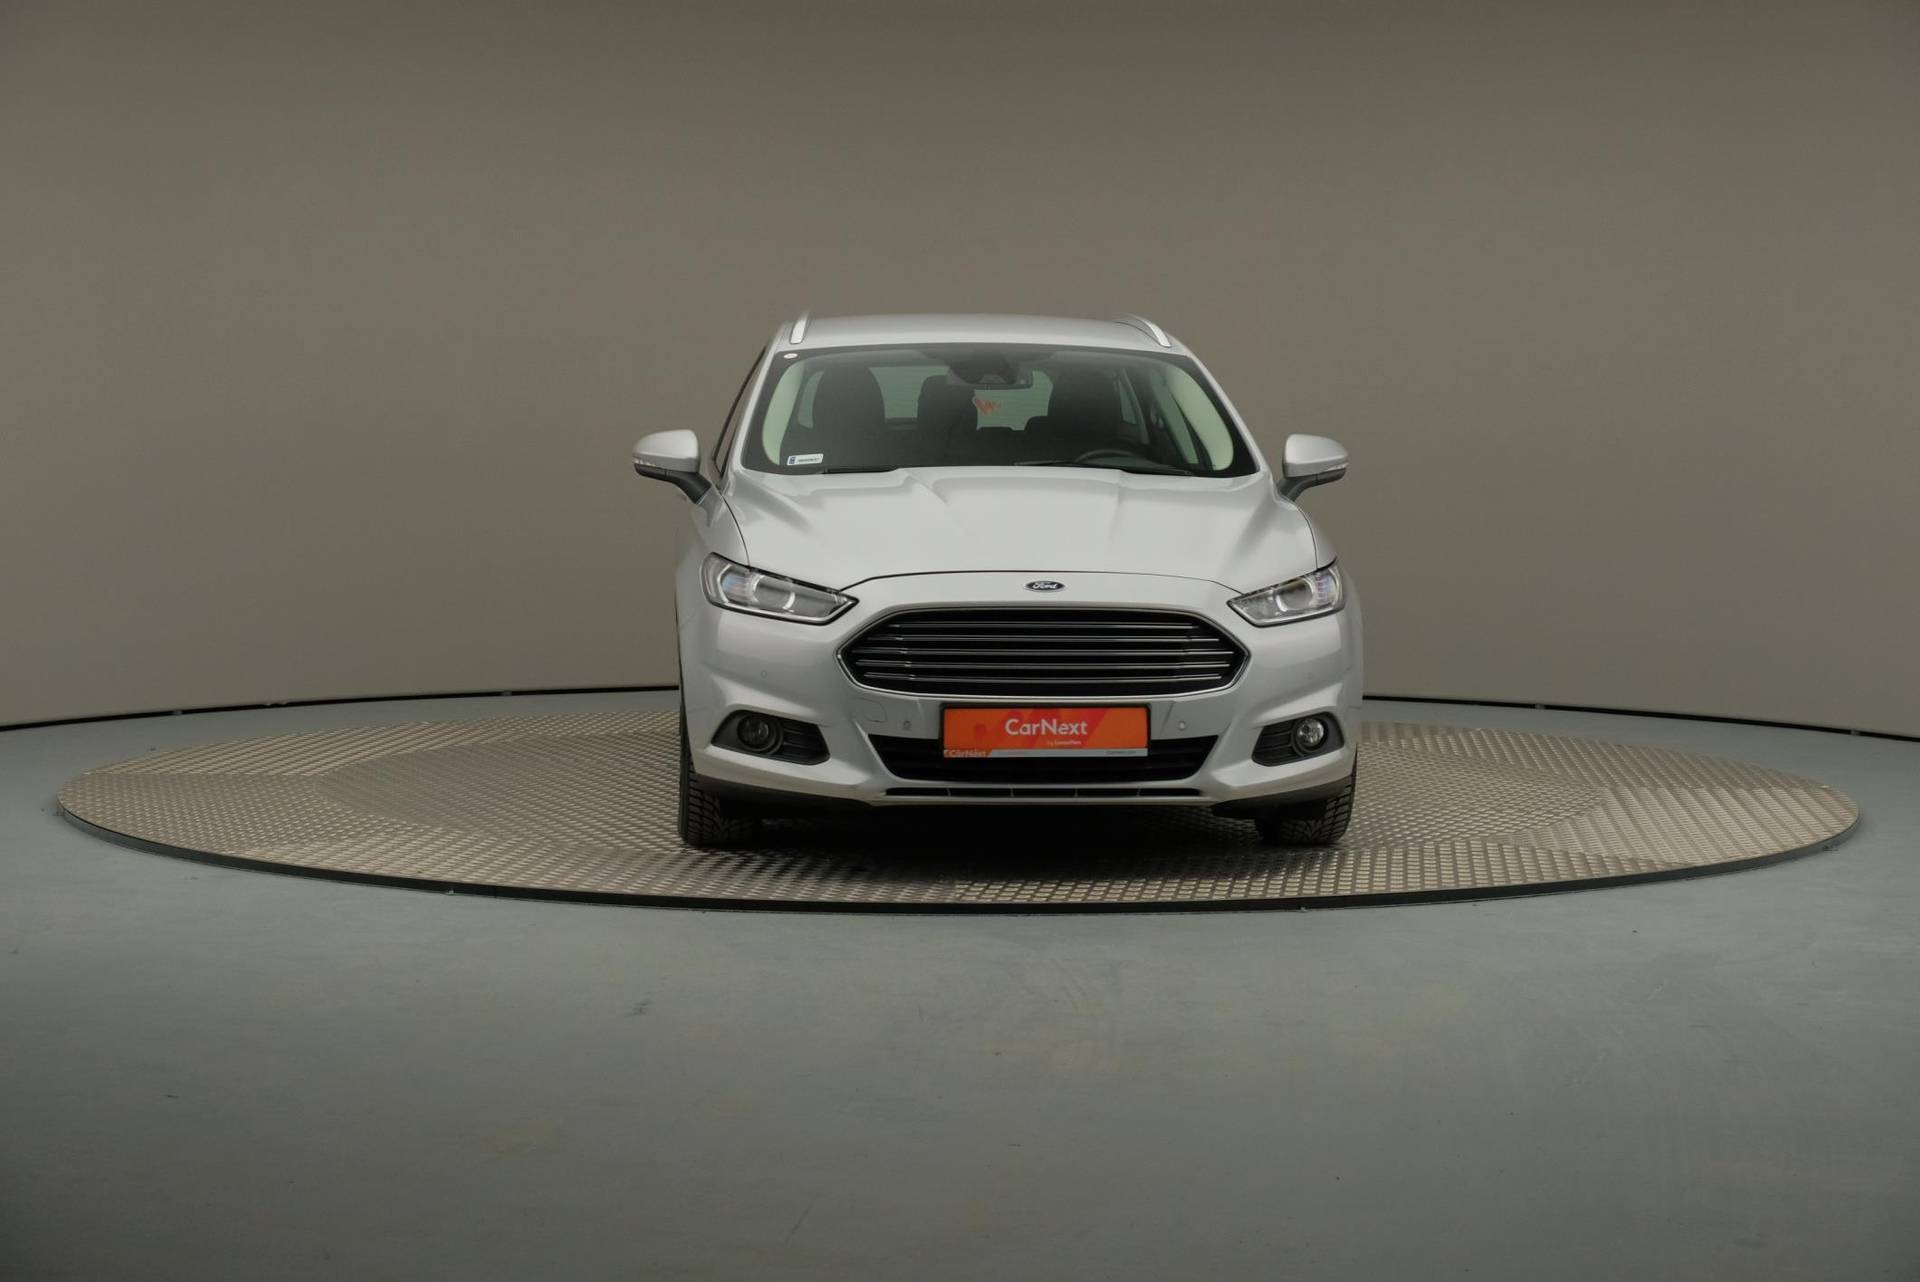 Ford Mondeo Turnier 1.5 Eco Boost Start-Stopp, Trend, 360-image31